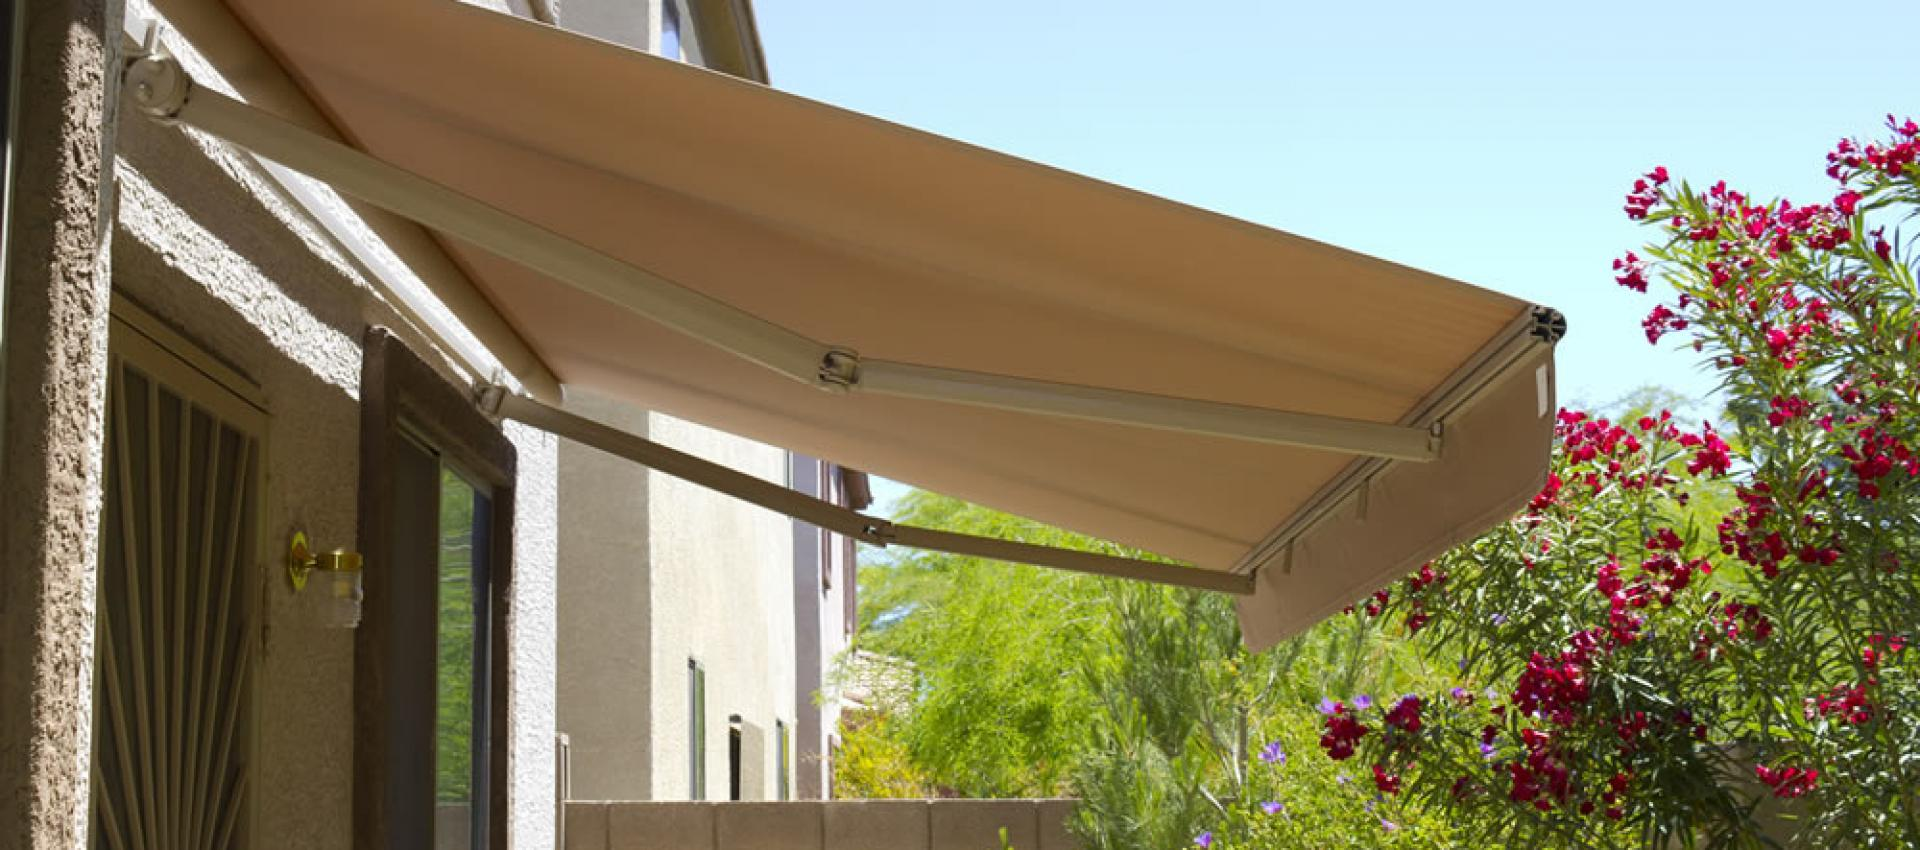 background awning3